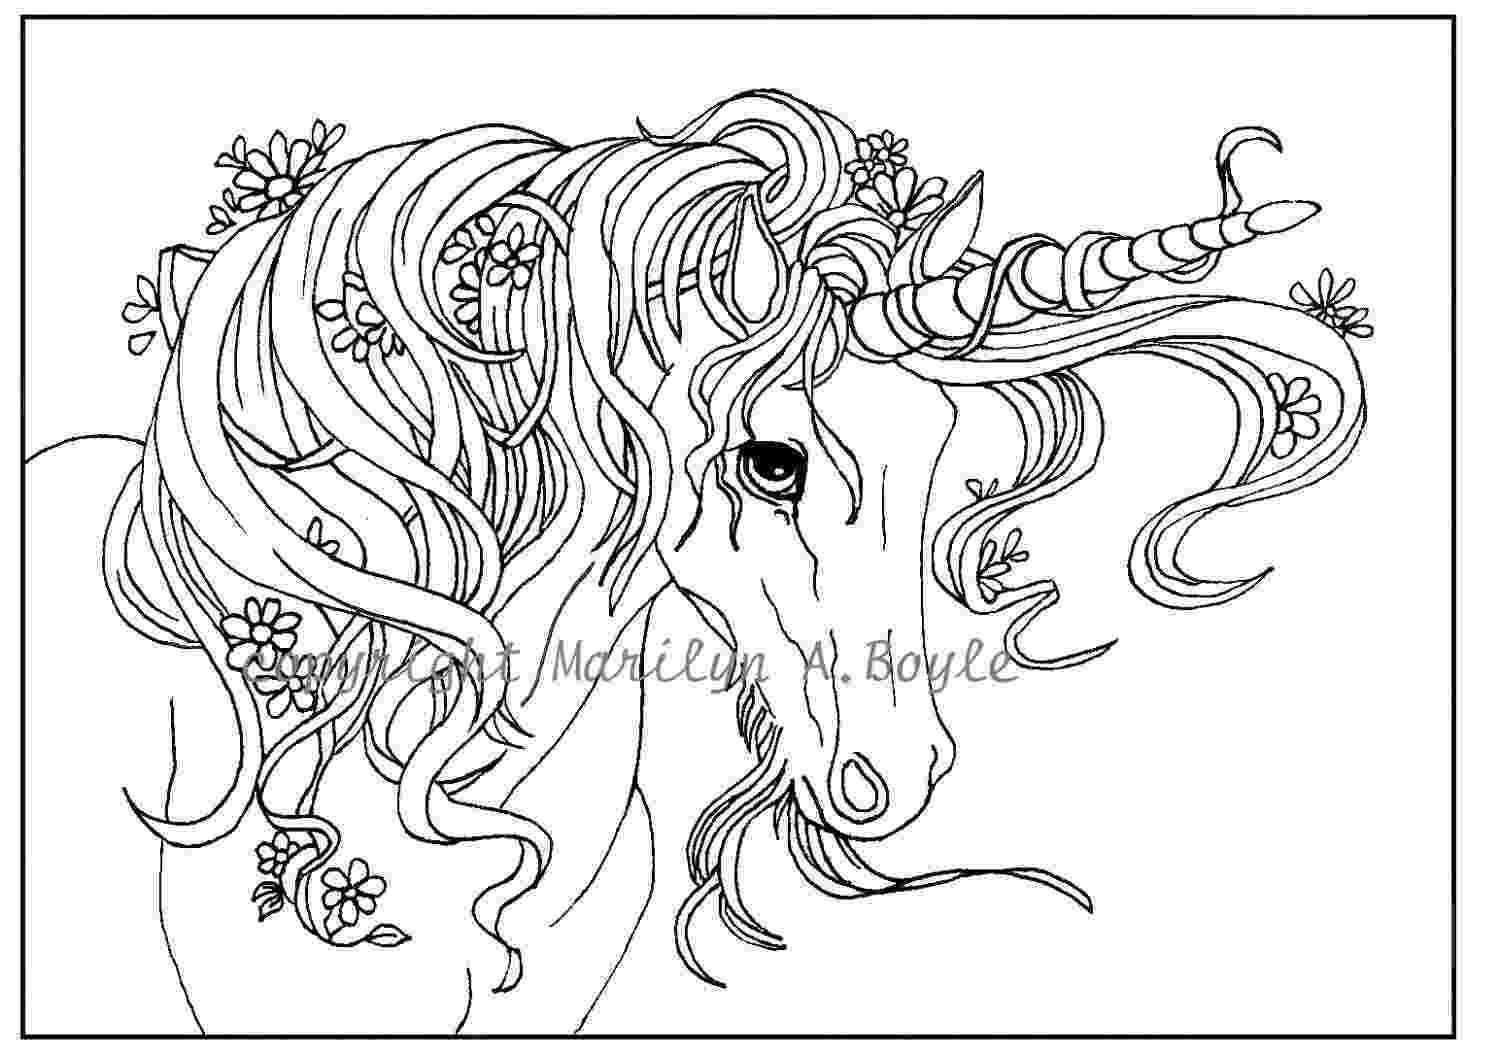 unicorn coloring pages for adults adult coloring page digital download unicorn flowers adults unicorn coloring for pages